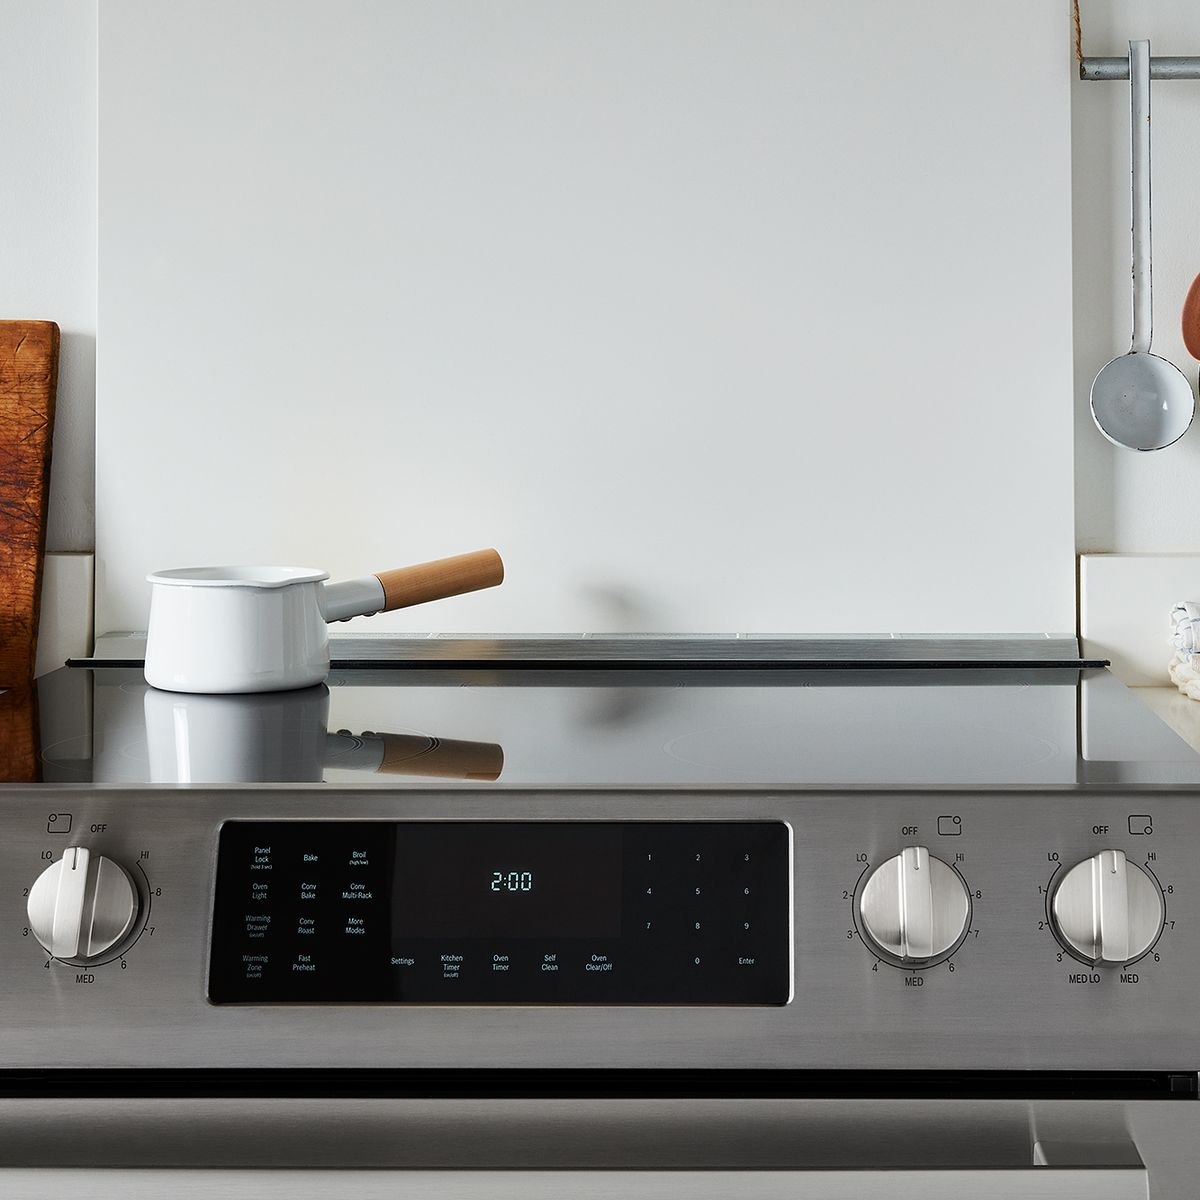 The Ultimate Guide To A Clean Stove So Good You Might Actually Do It